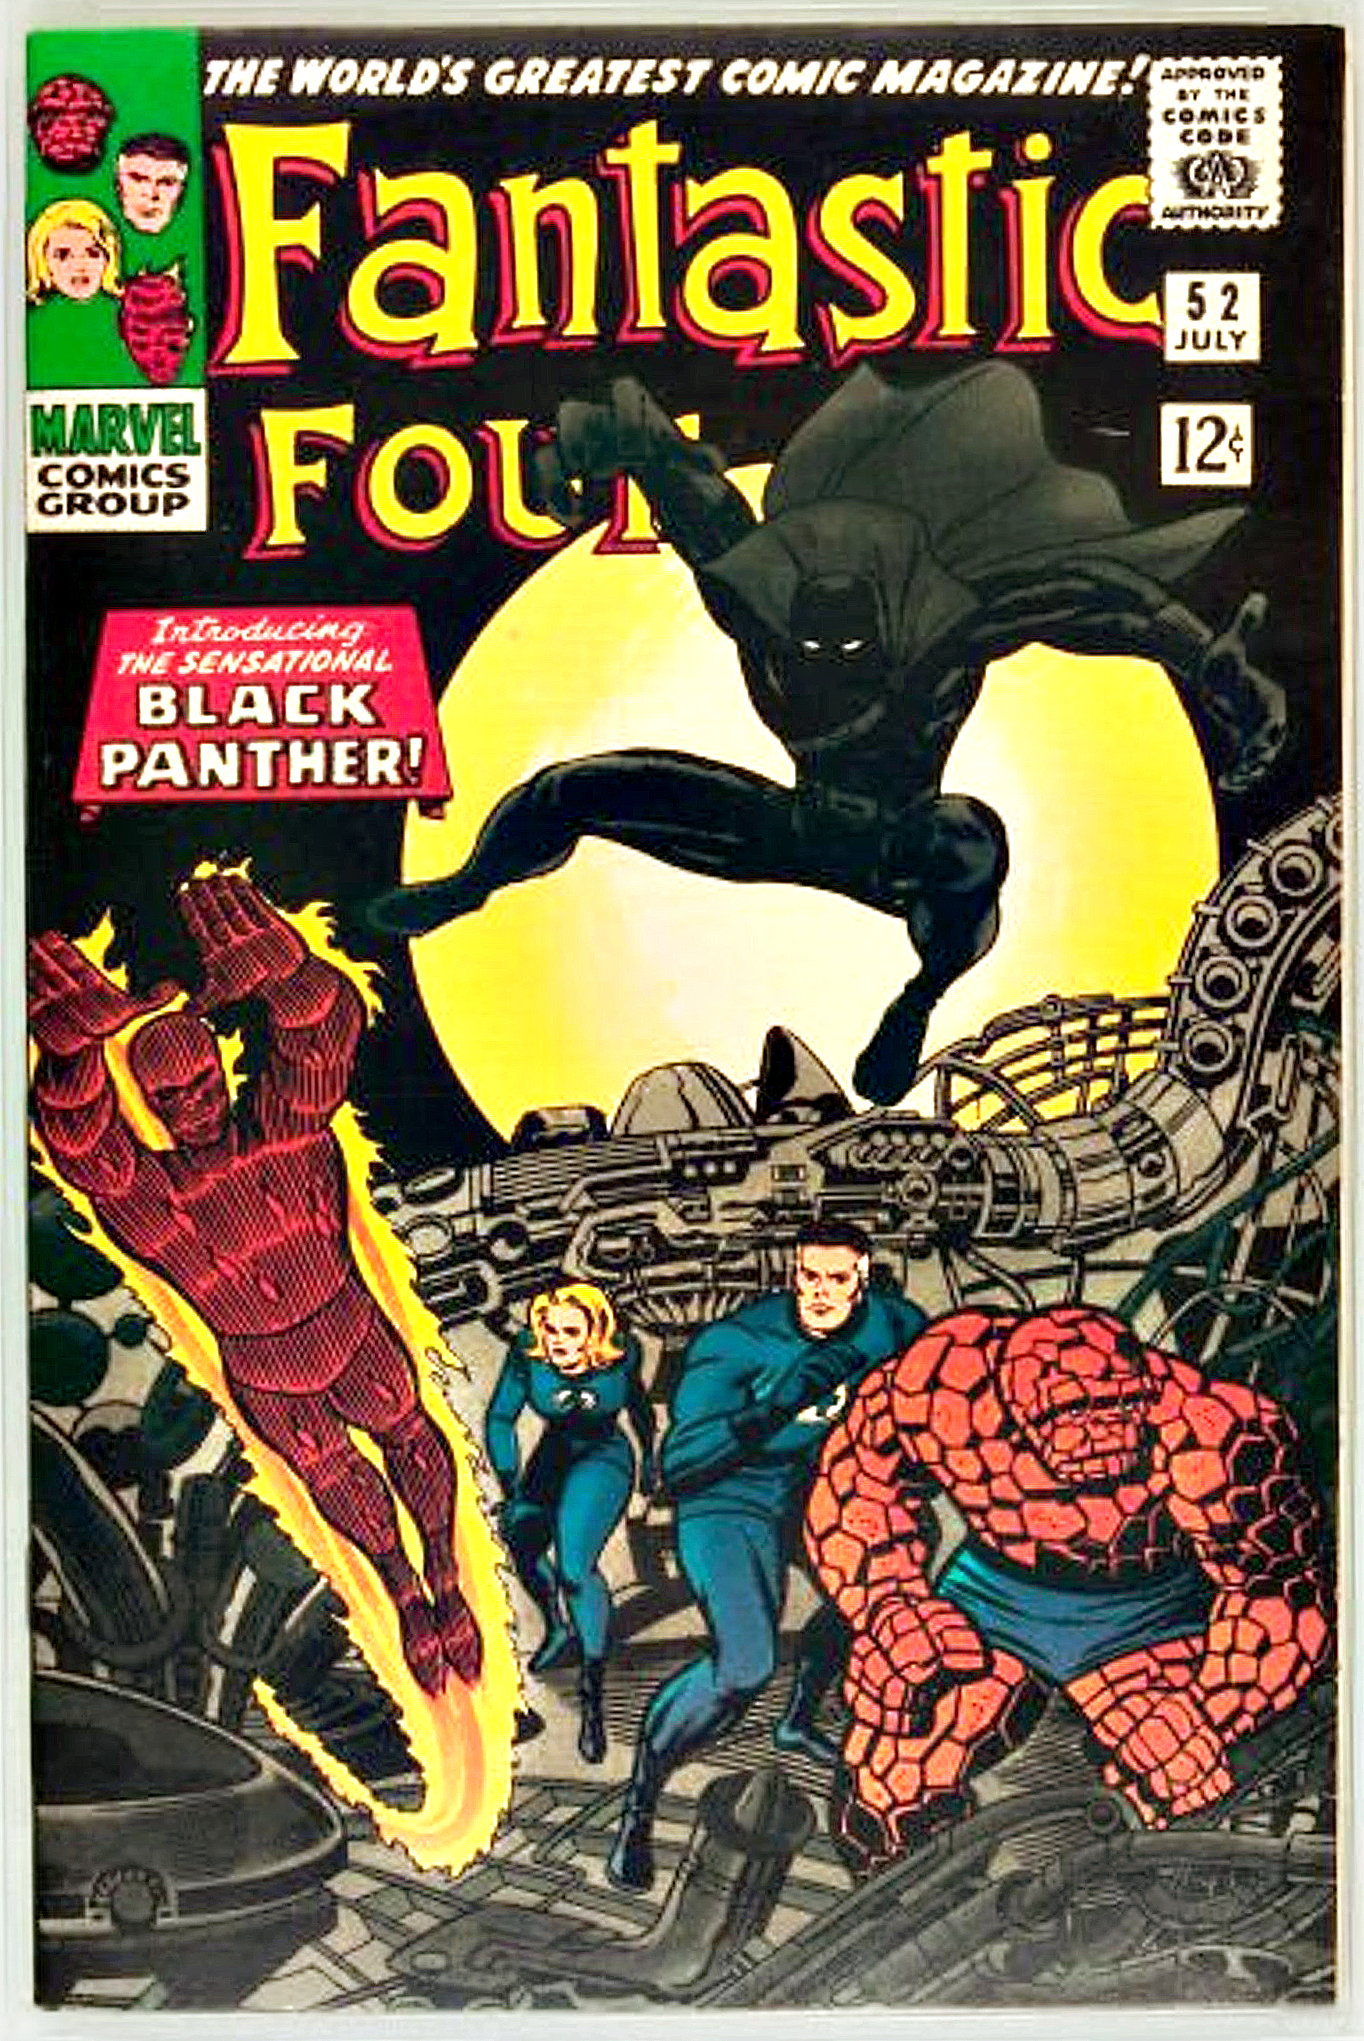 Fantastic Four #52, where Black Panther was first featured. (Image courtesy of LiveAuctioneers.com and Heritage Auctions)